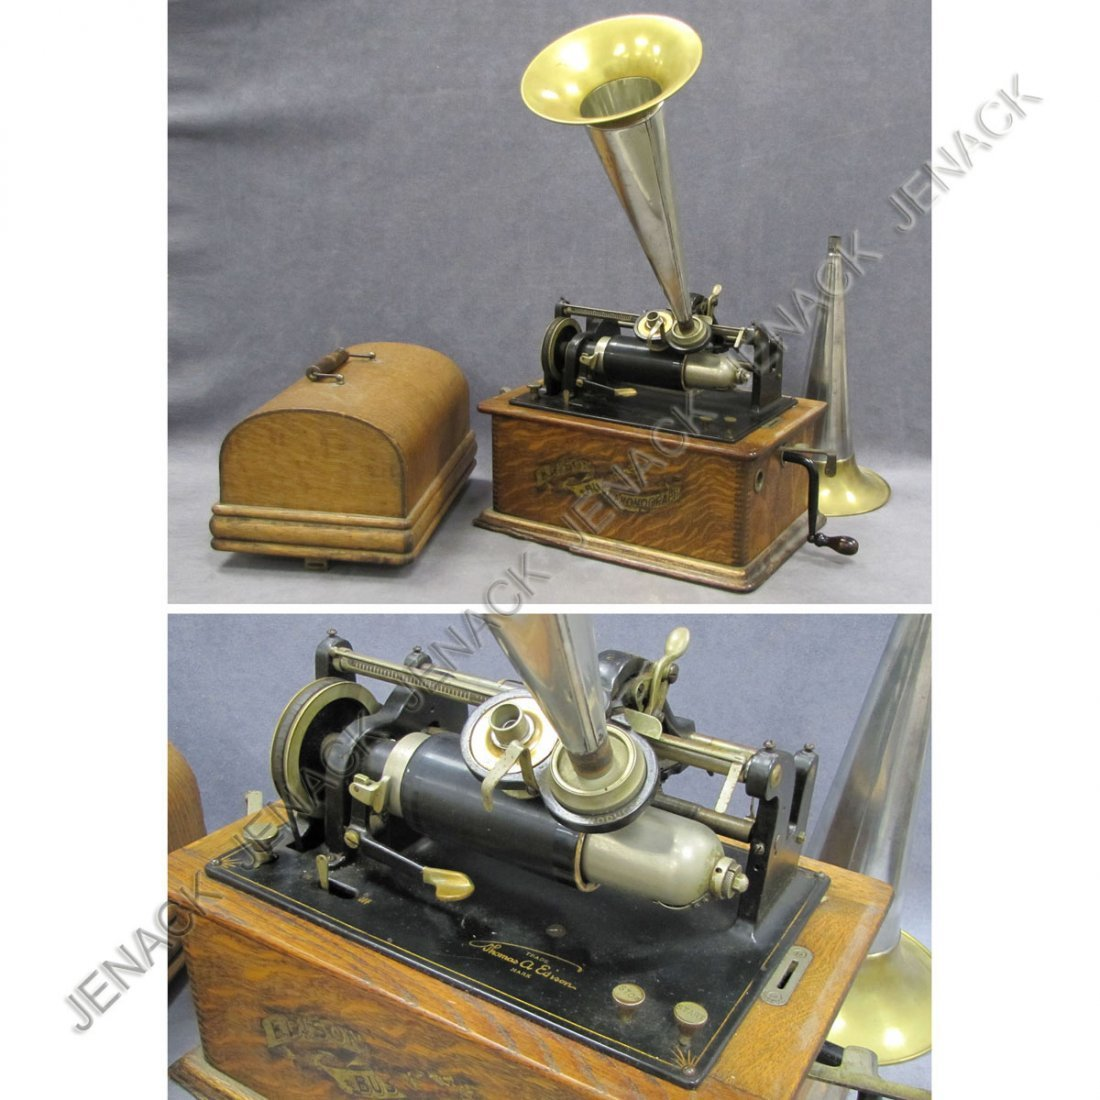 11: VINTAGE EDISON BUSINESS PHONOGRAPH, MODEL C